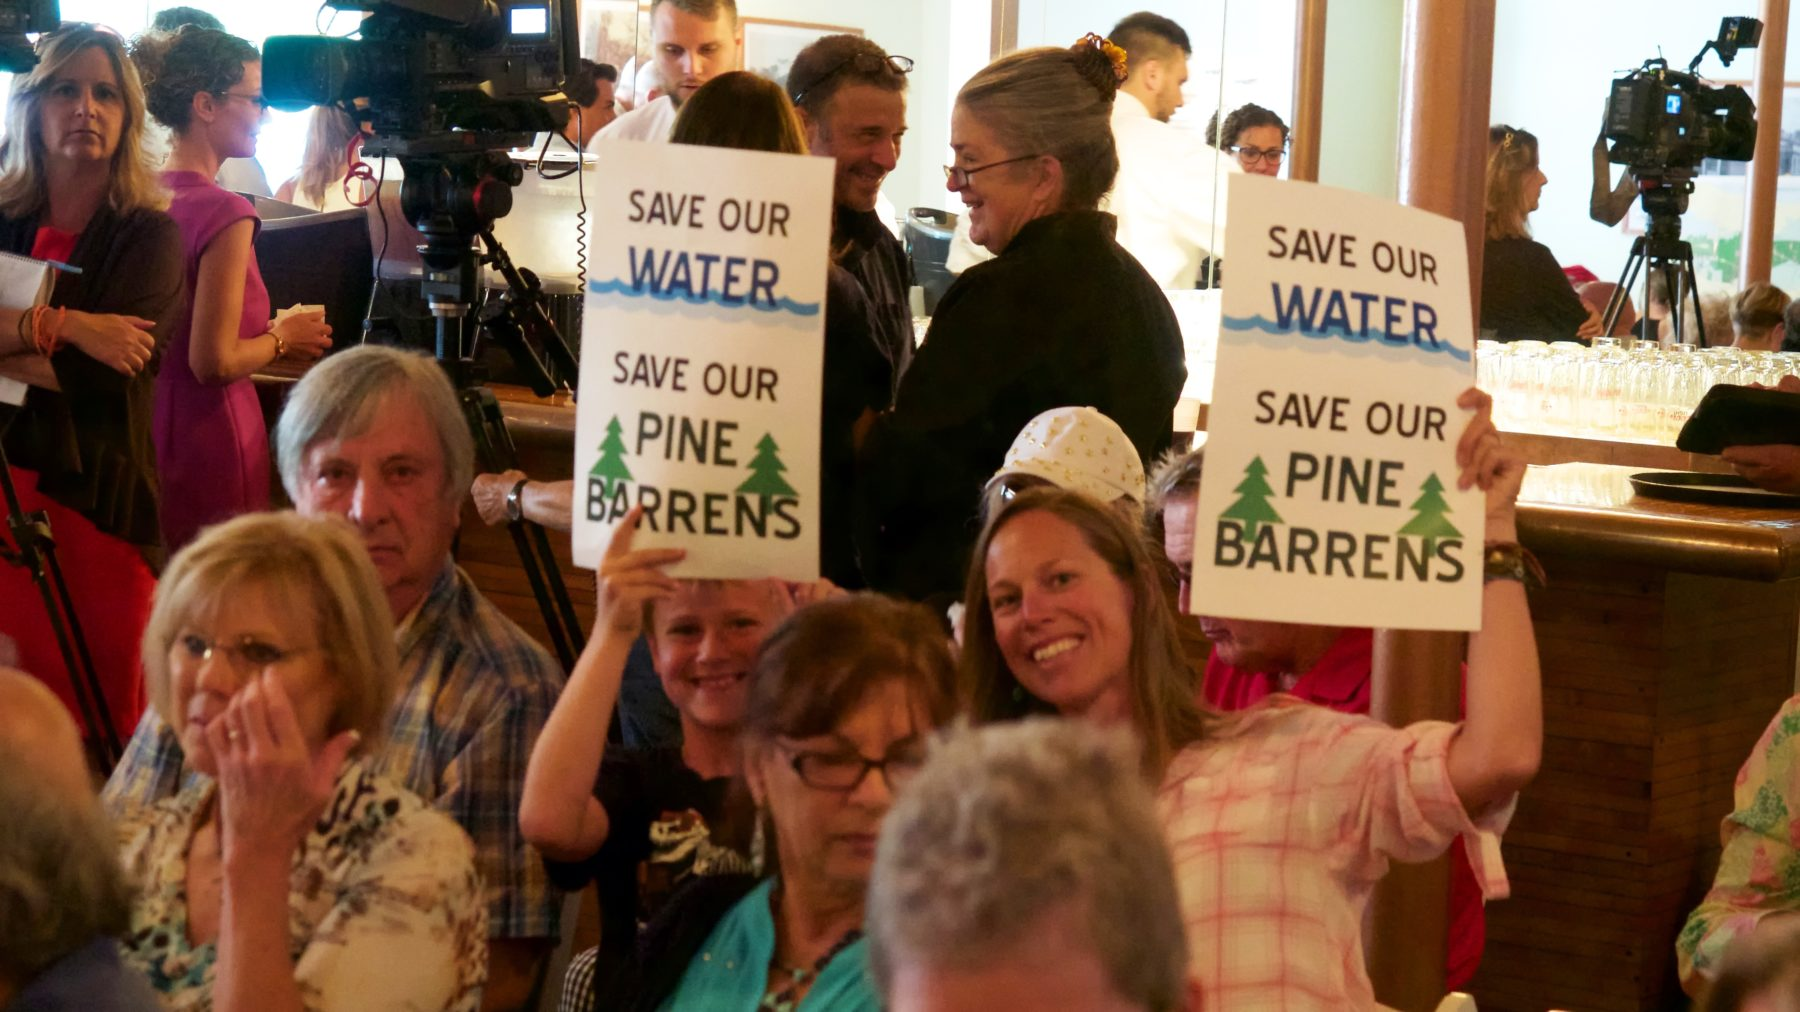 People holding signs that read save our water save our pine barrens